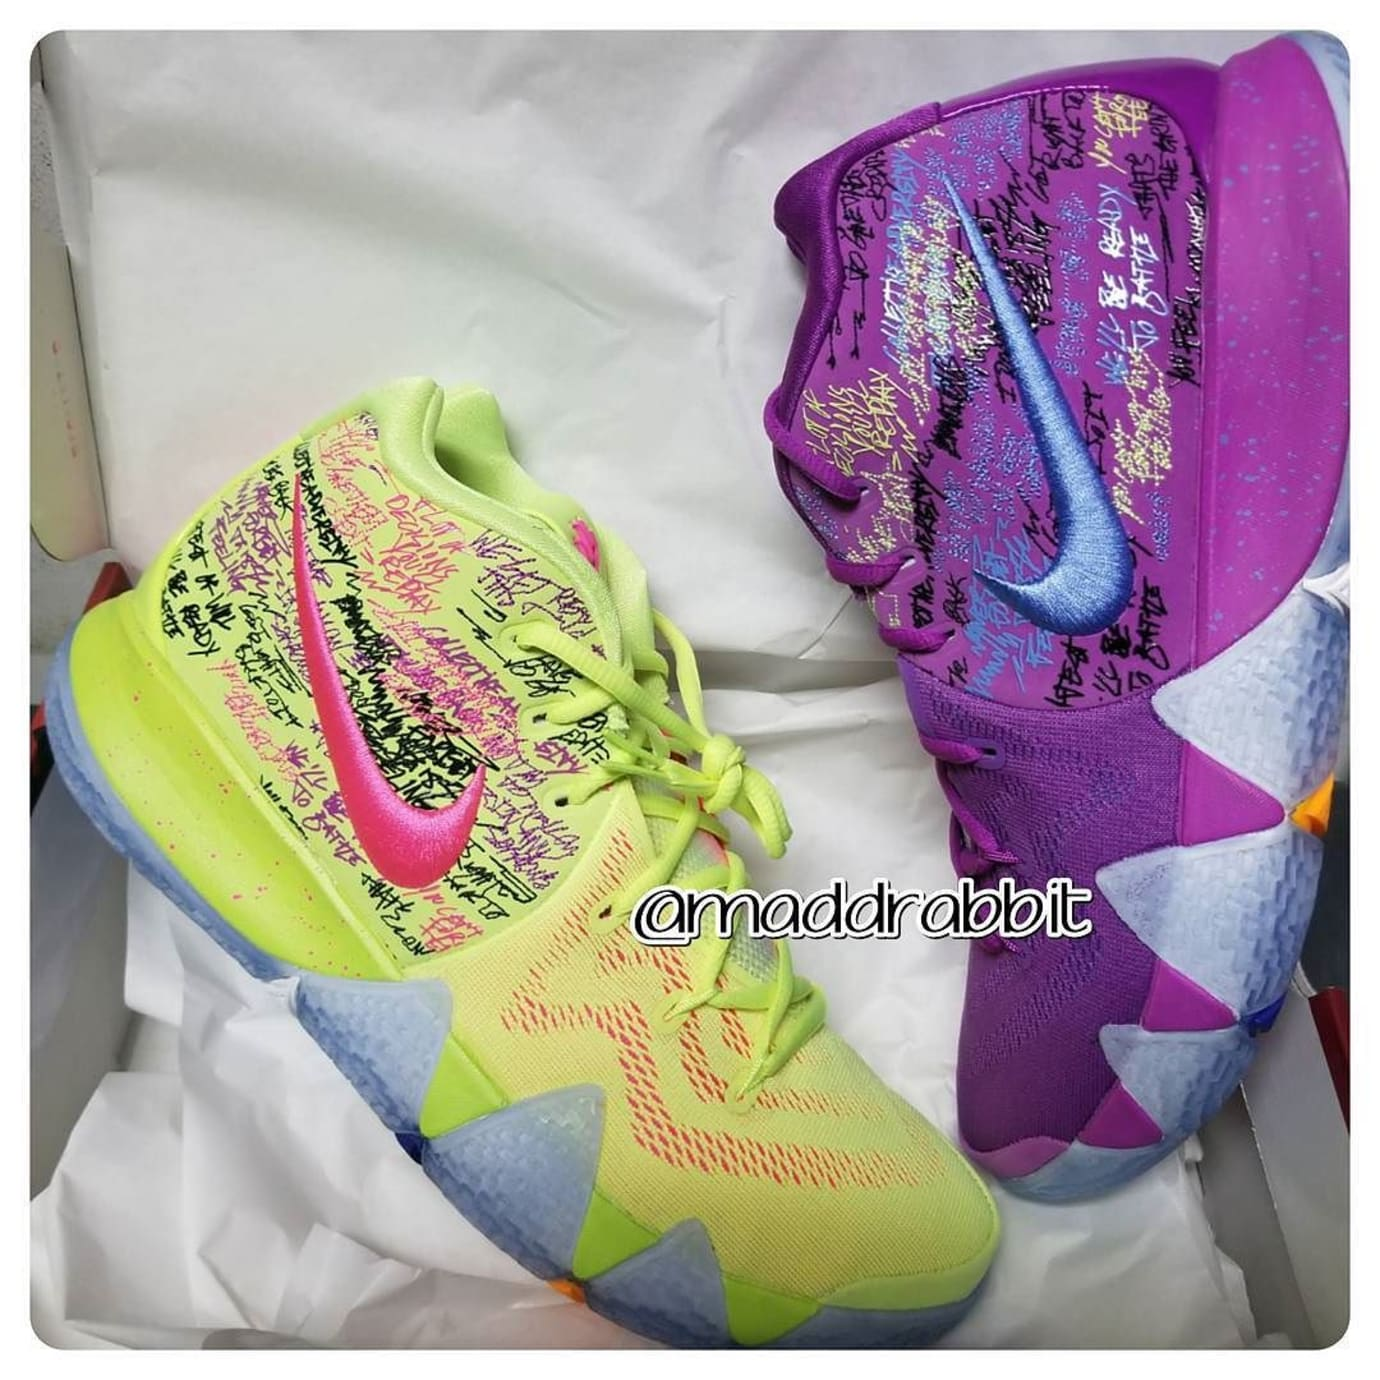 buy online 8e715 612a4 Nike Kyrie 4 EP Multi-color 943806-900 | Sole Collector